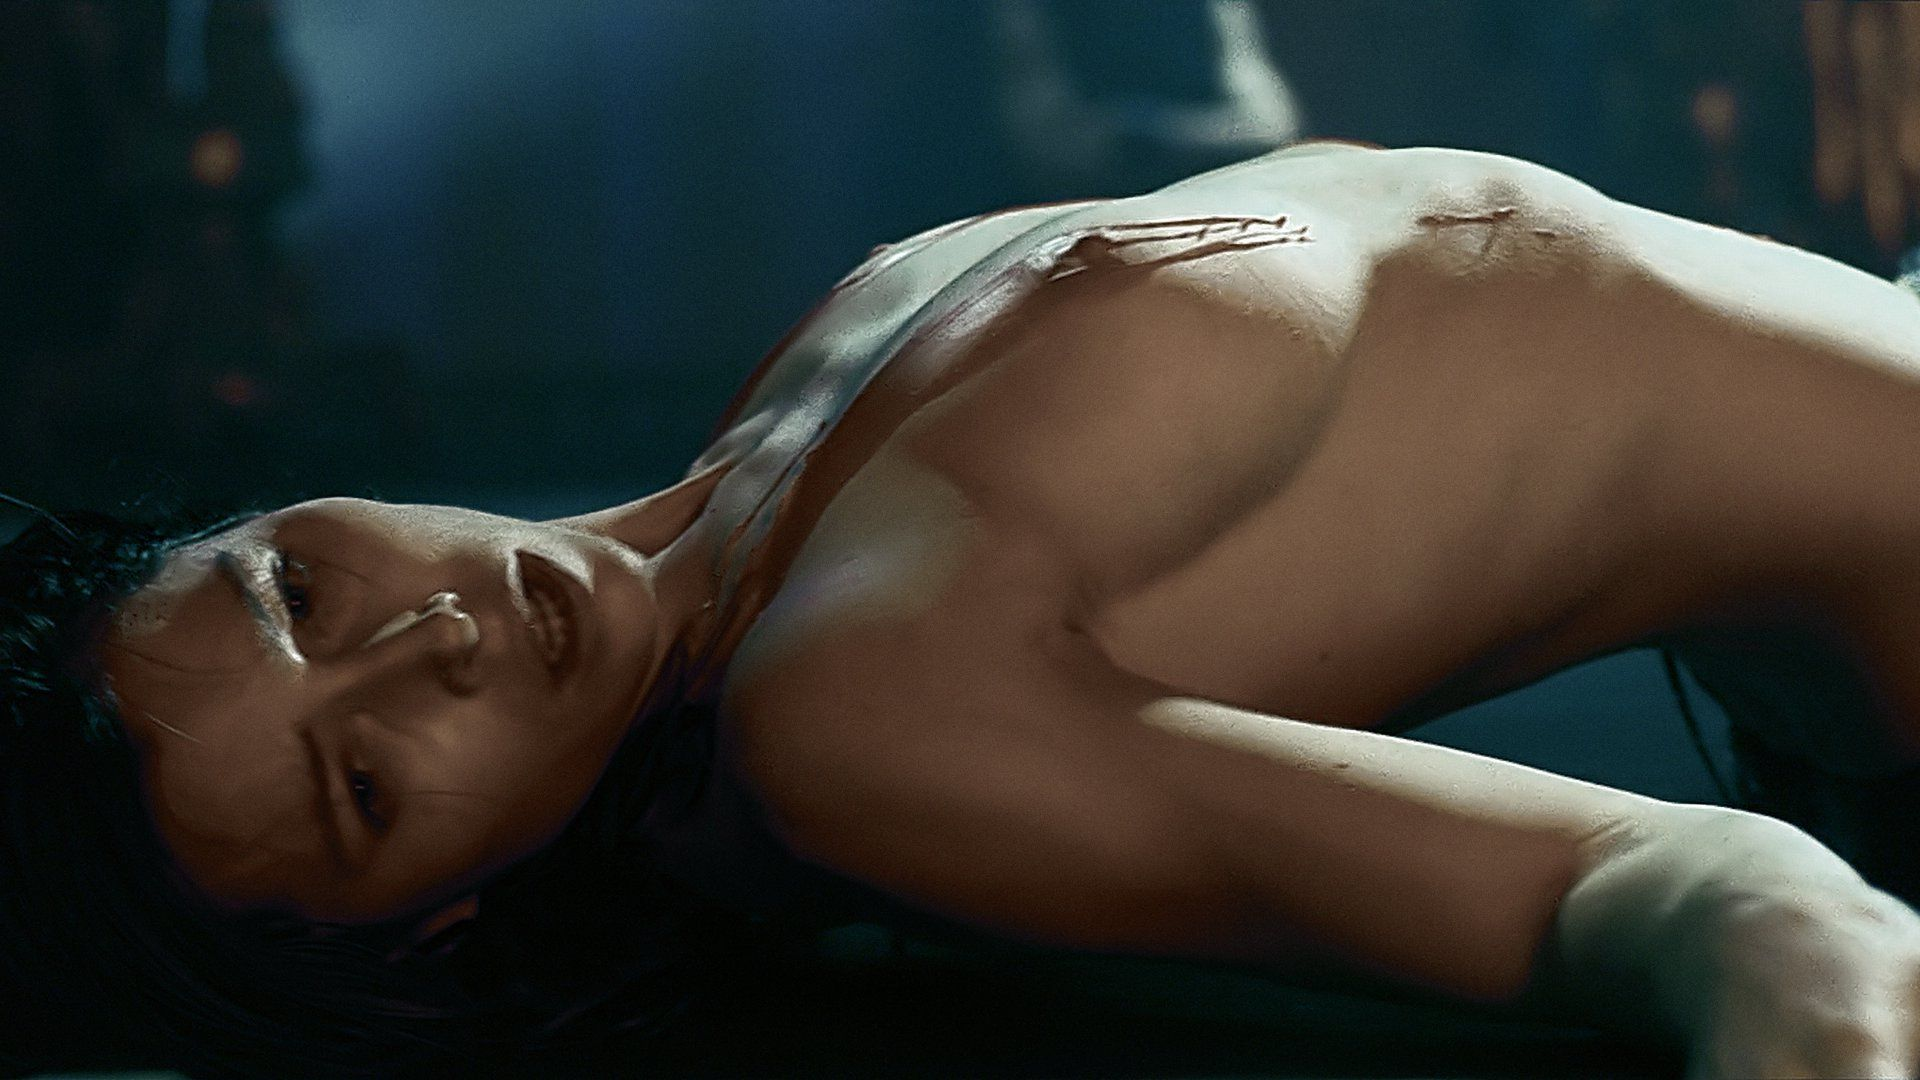 Jessica Biel Getting Naked, Which Is Unremarkable For An Actress But You Want To Look All The Same